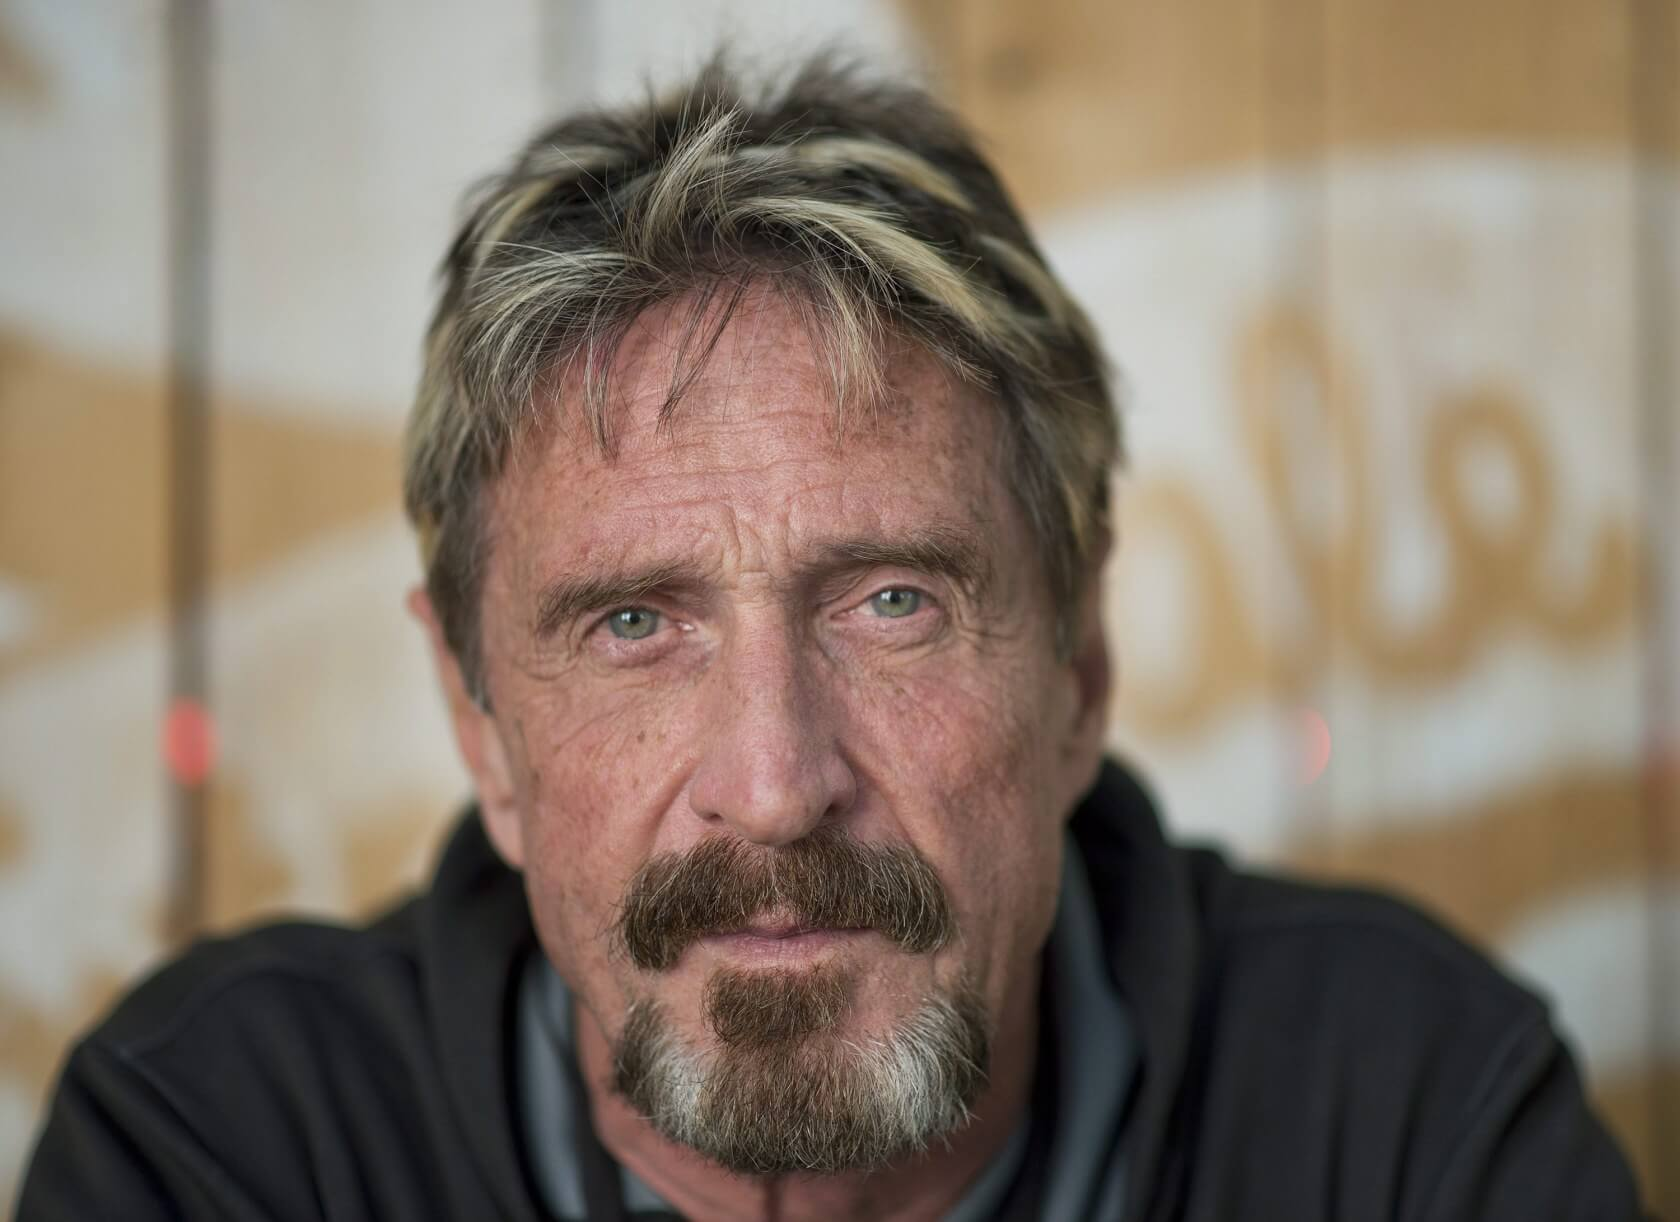 John McAfee arrested in Spain on tax evasion charges, sued by SEC